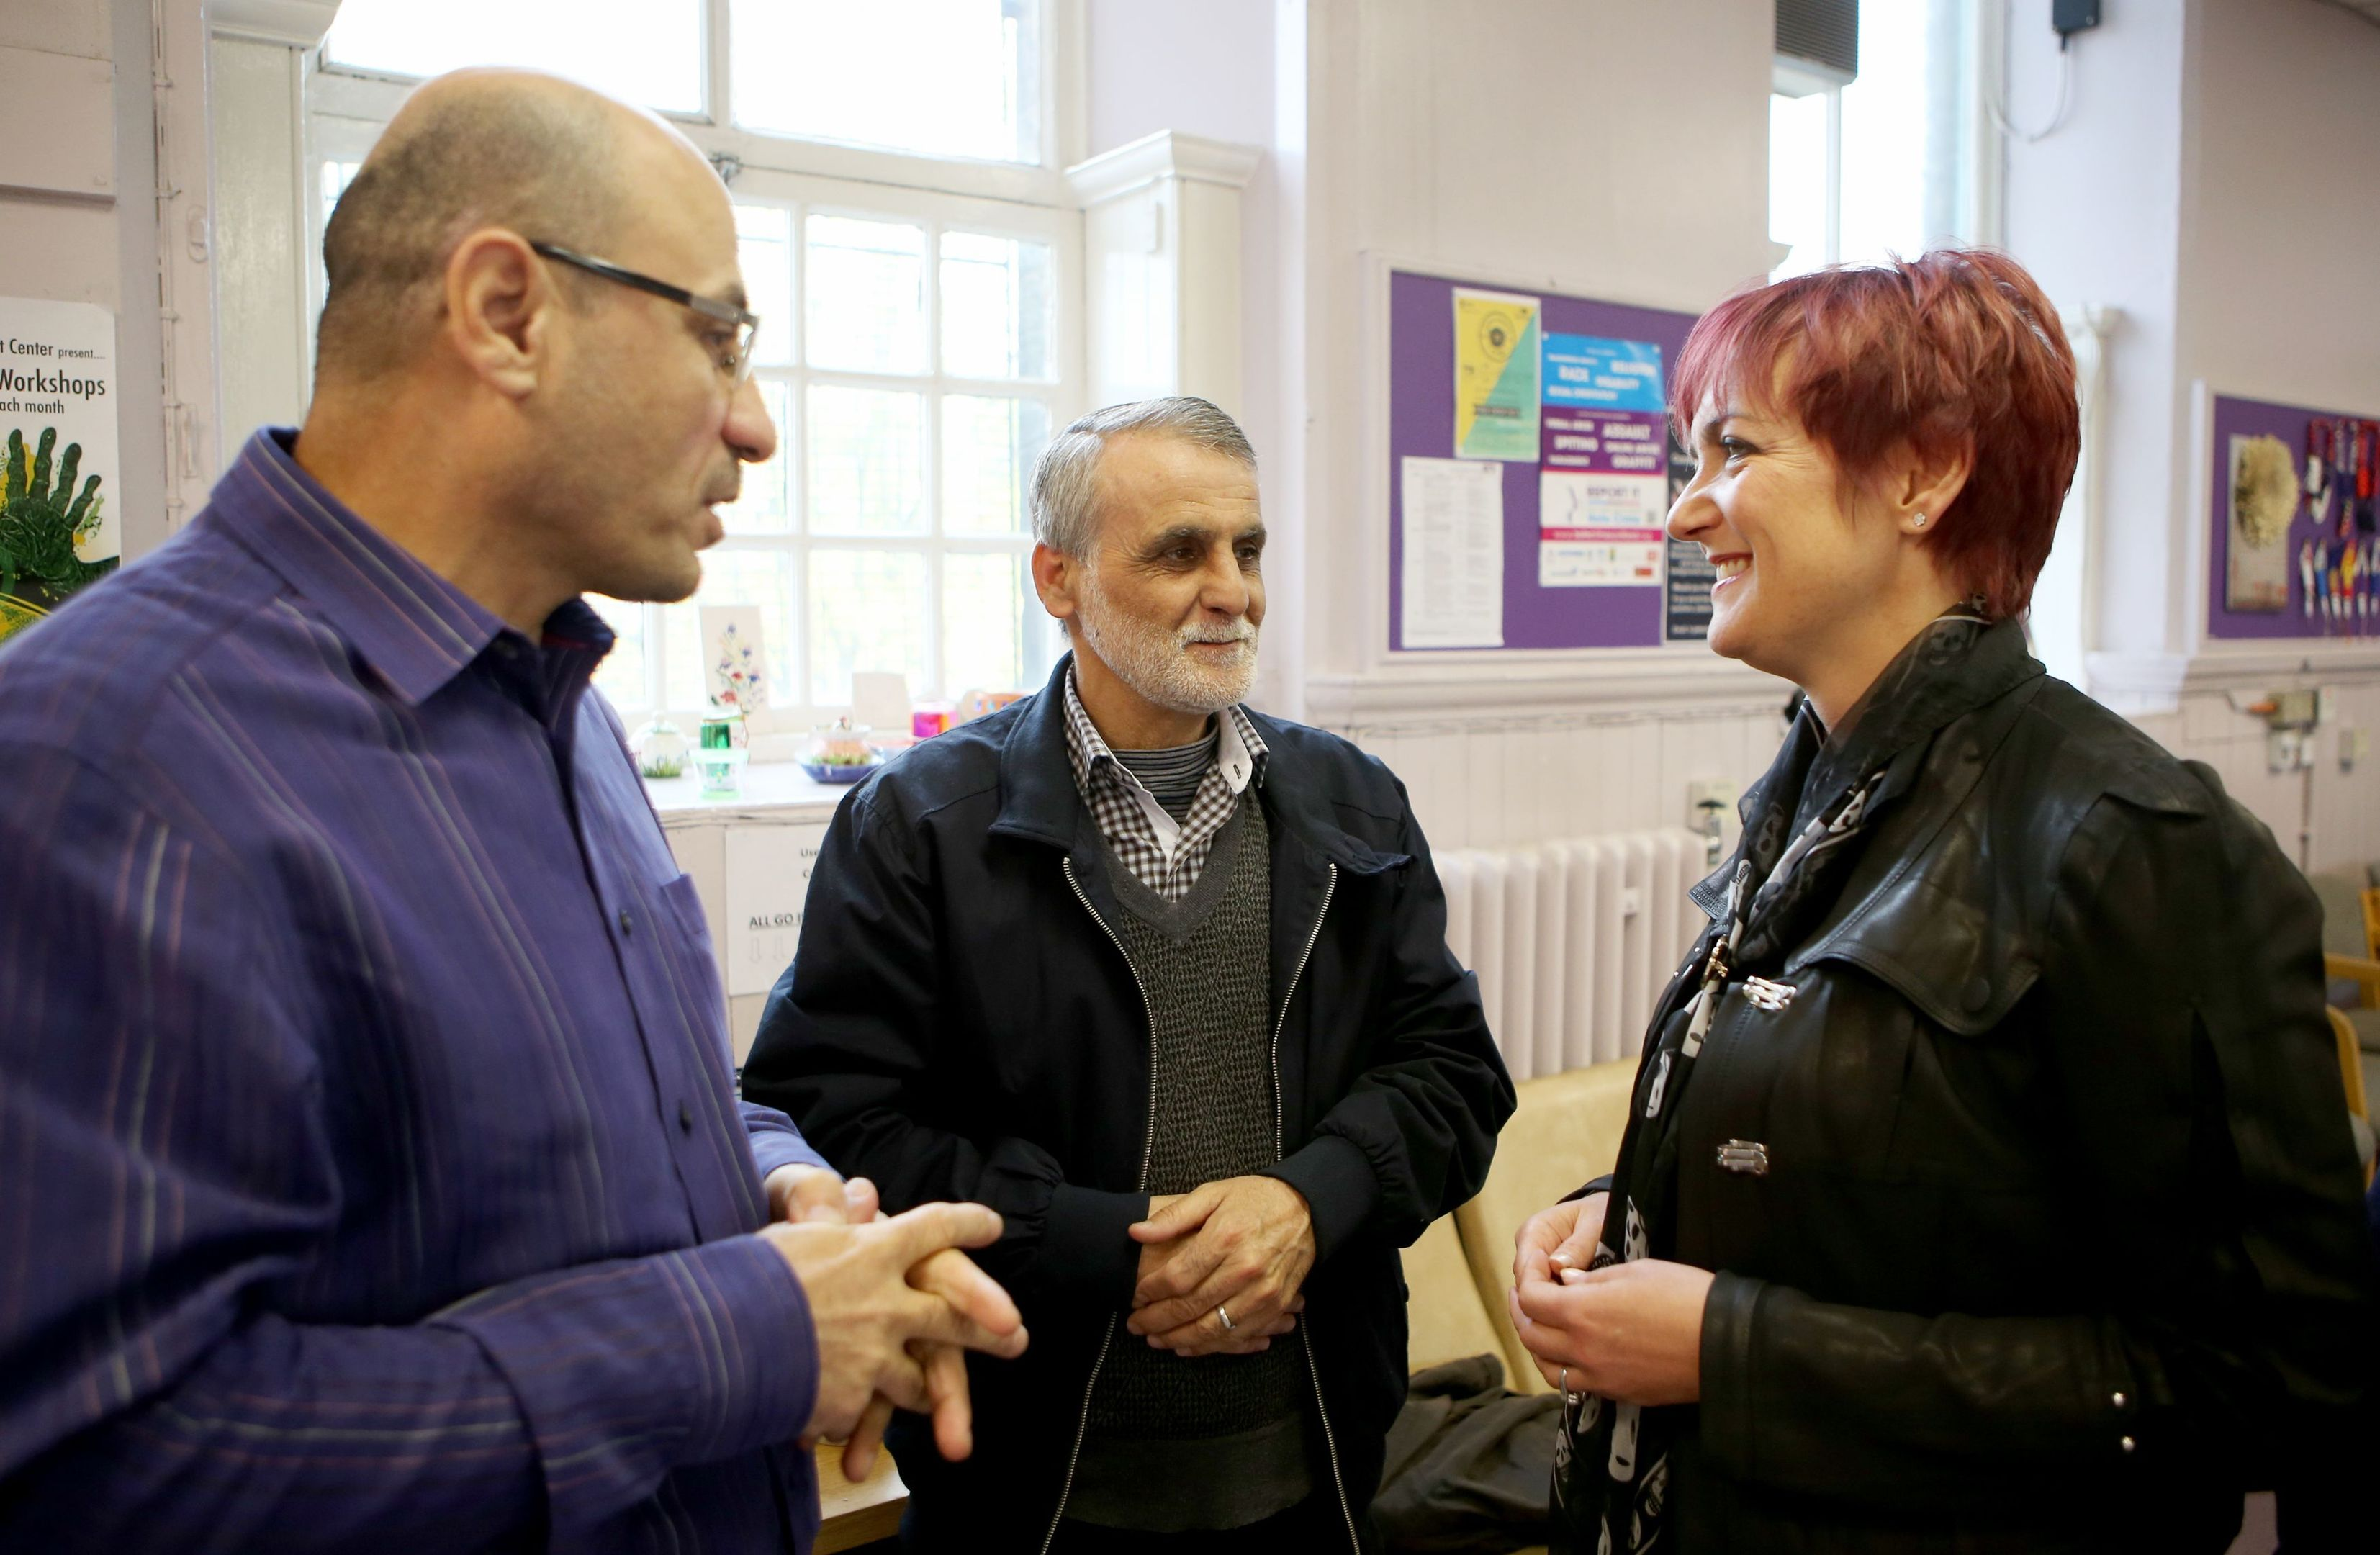 Equalities Secretary Angela Constance (right) meets refugees who have been welcomed into Scottish communities at the Maryhill Integration Network in Glasgow.